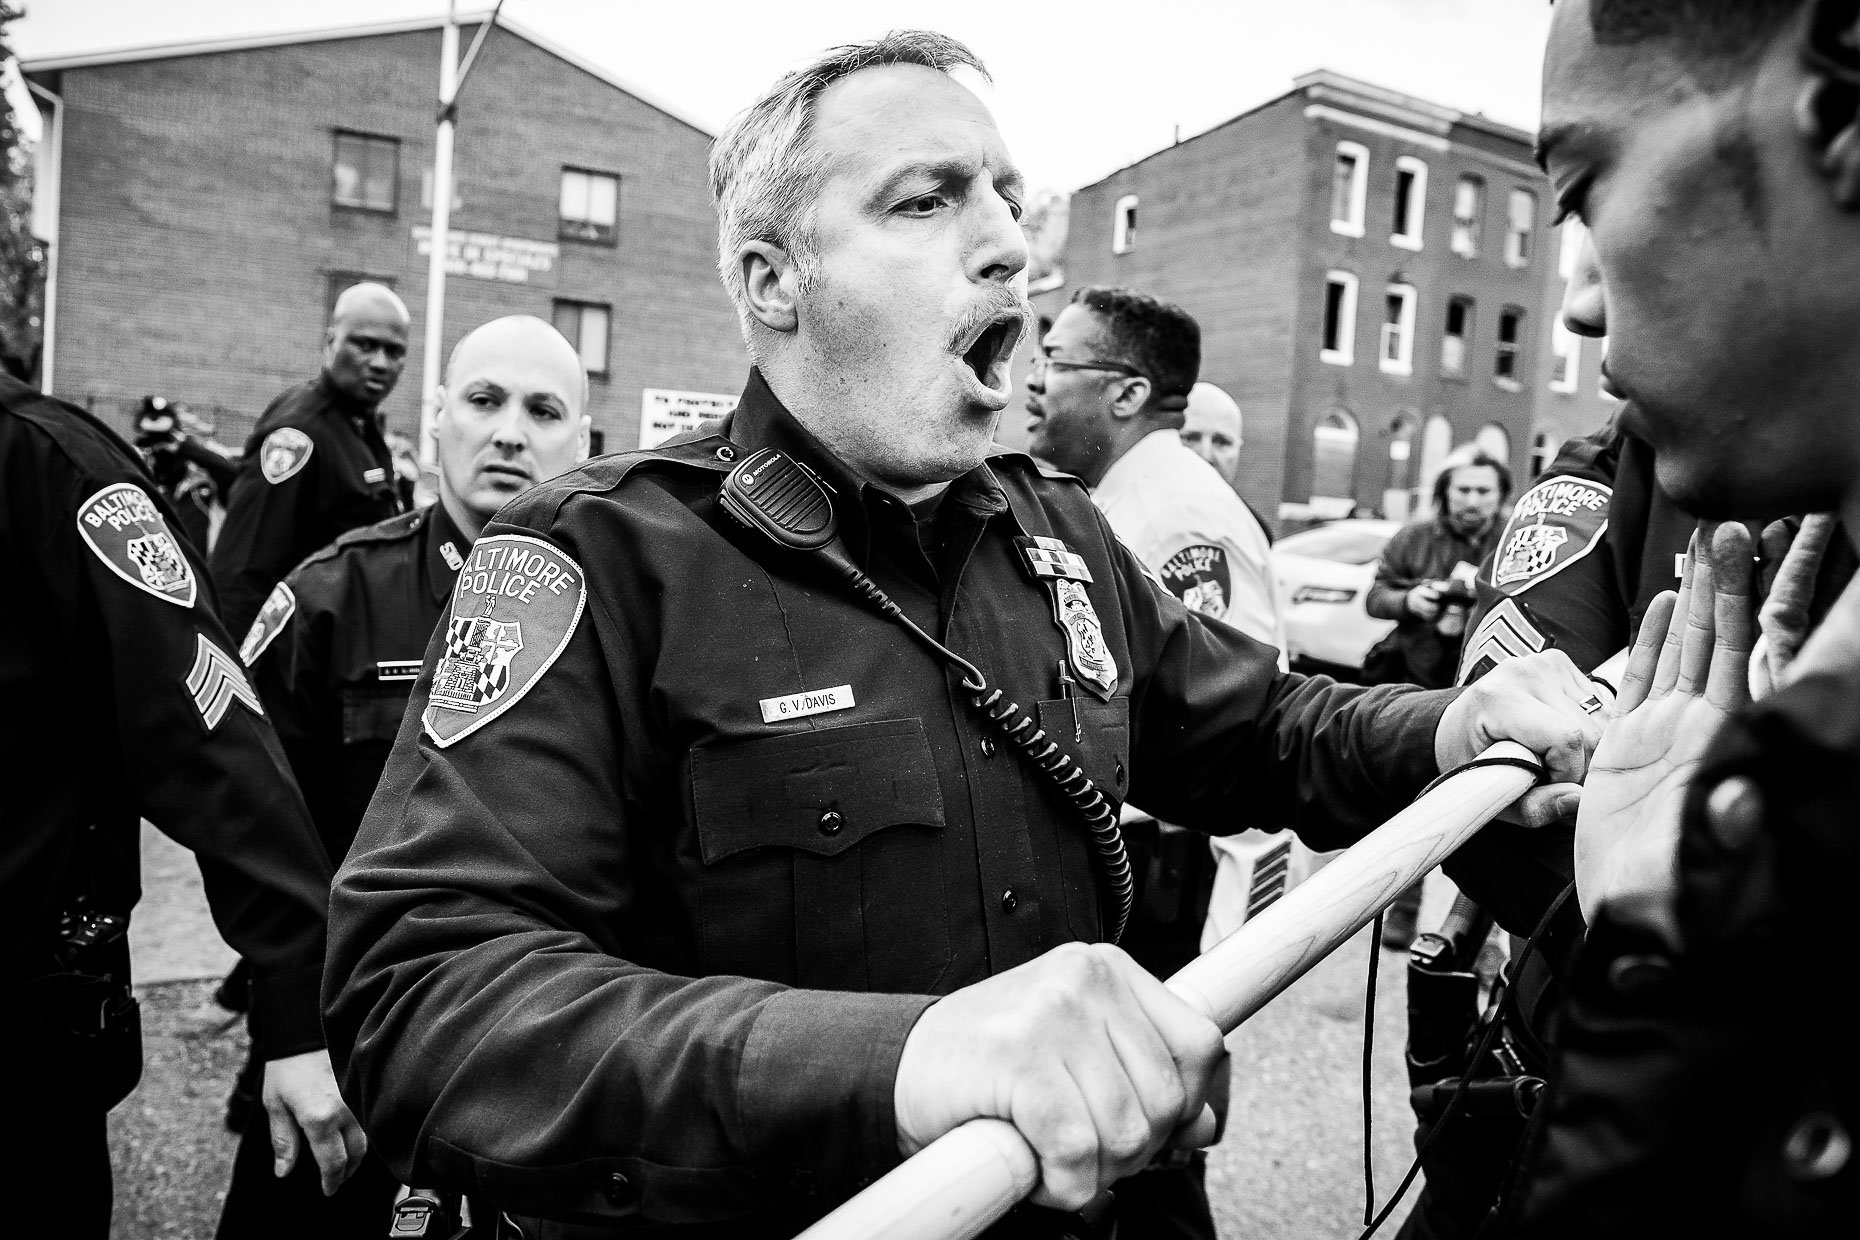 Baltimore Responds - The Baltimore Uprising - Photojournalism 12